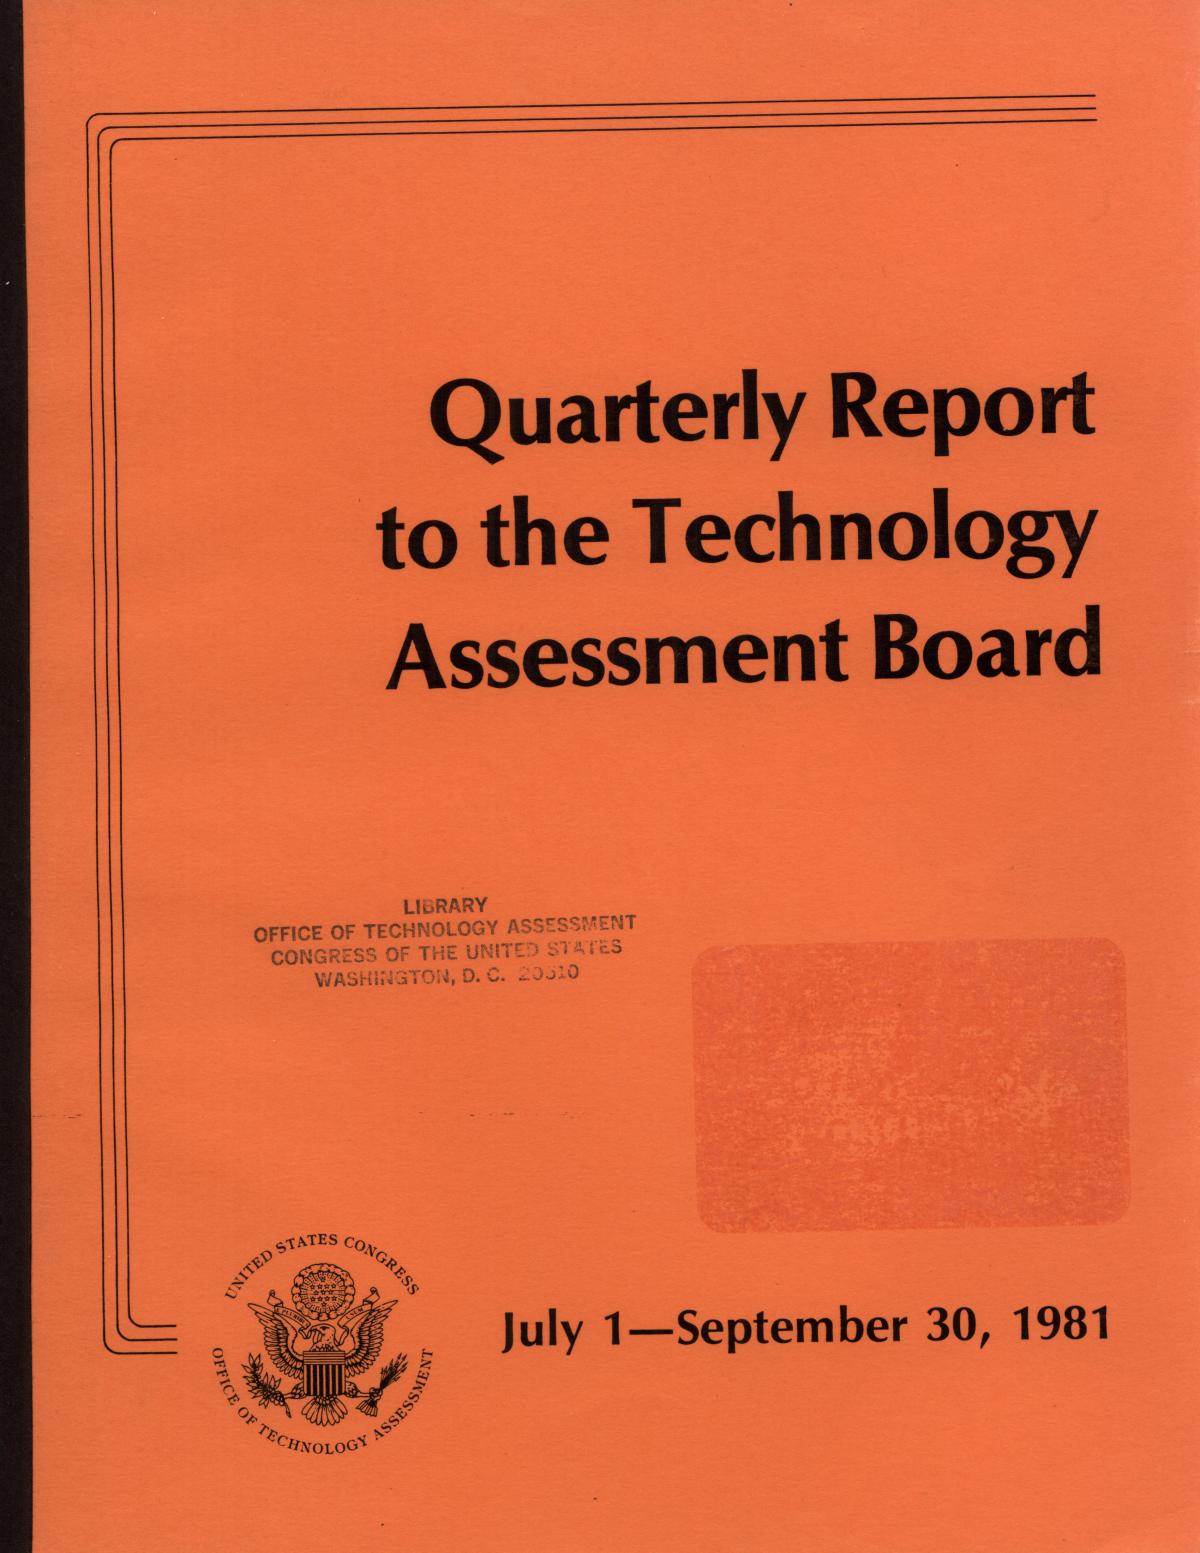 Quarterly Report to the Technology Assessment Board, July 1 - September 30, 1981                                                                                                      Front Cover